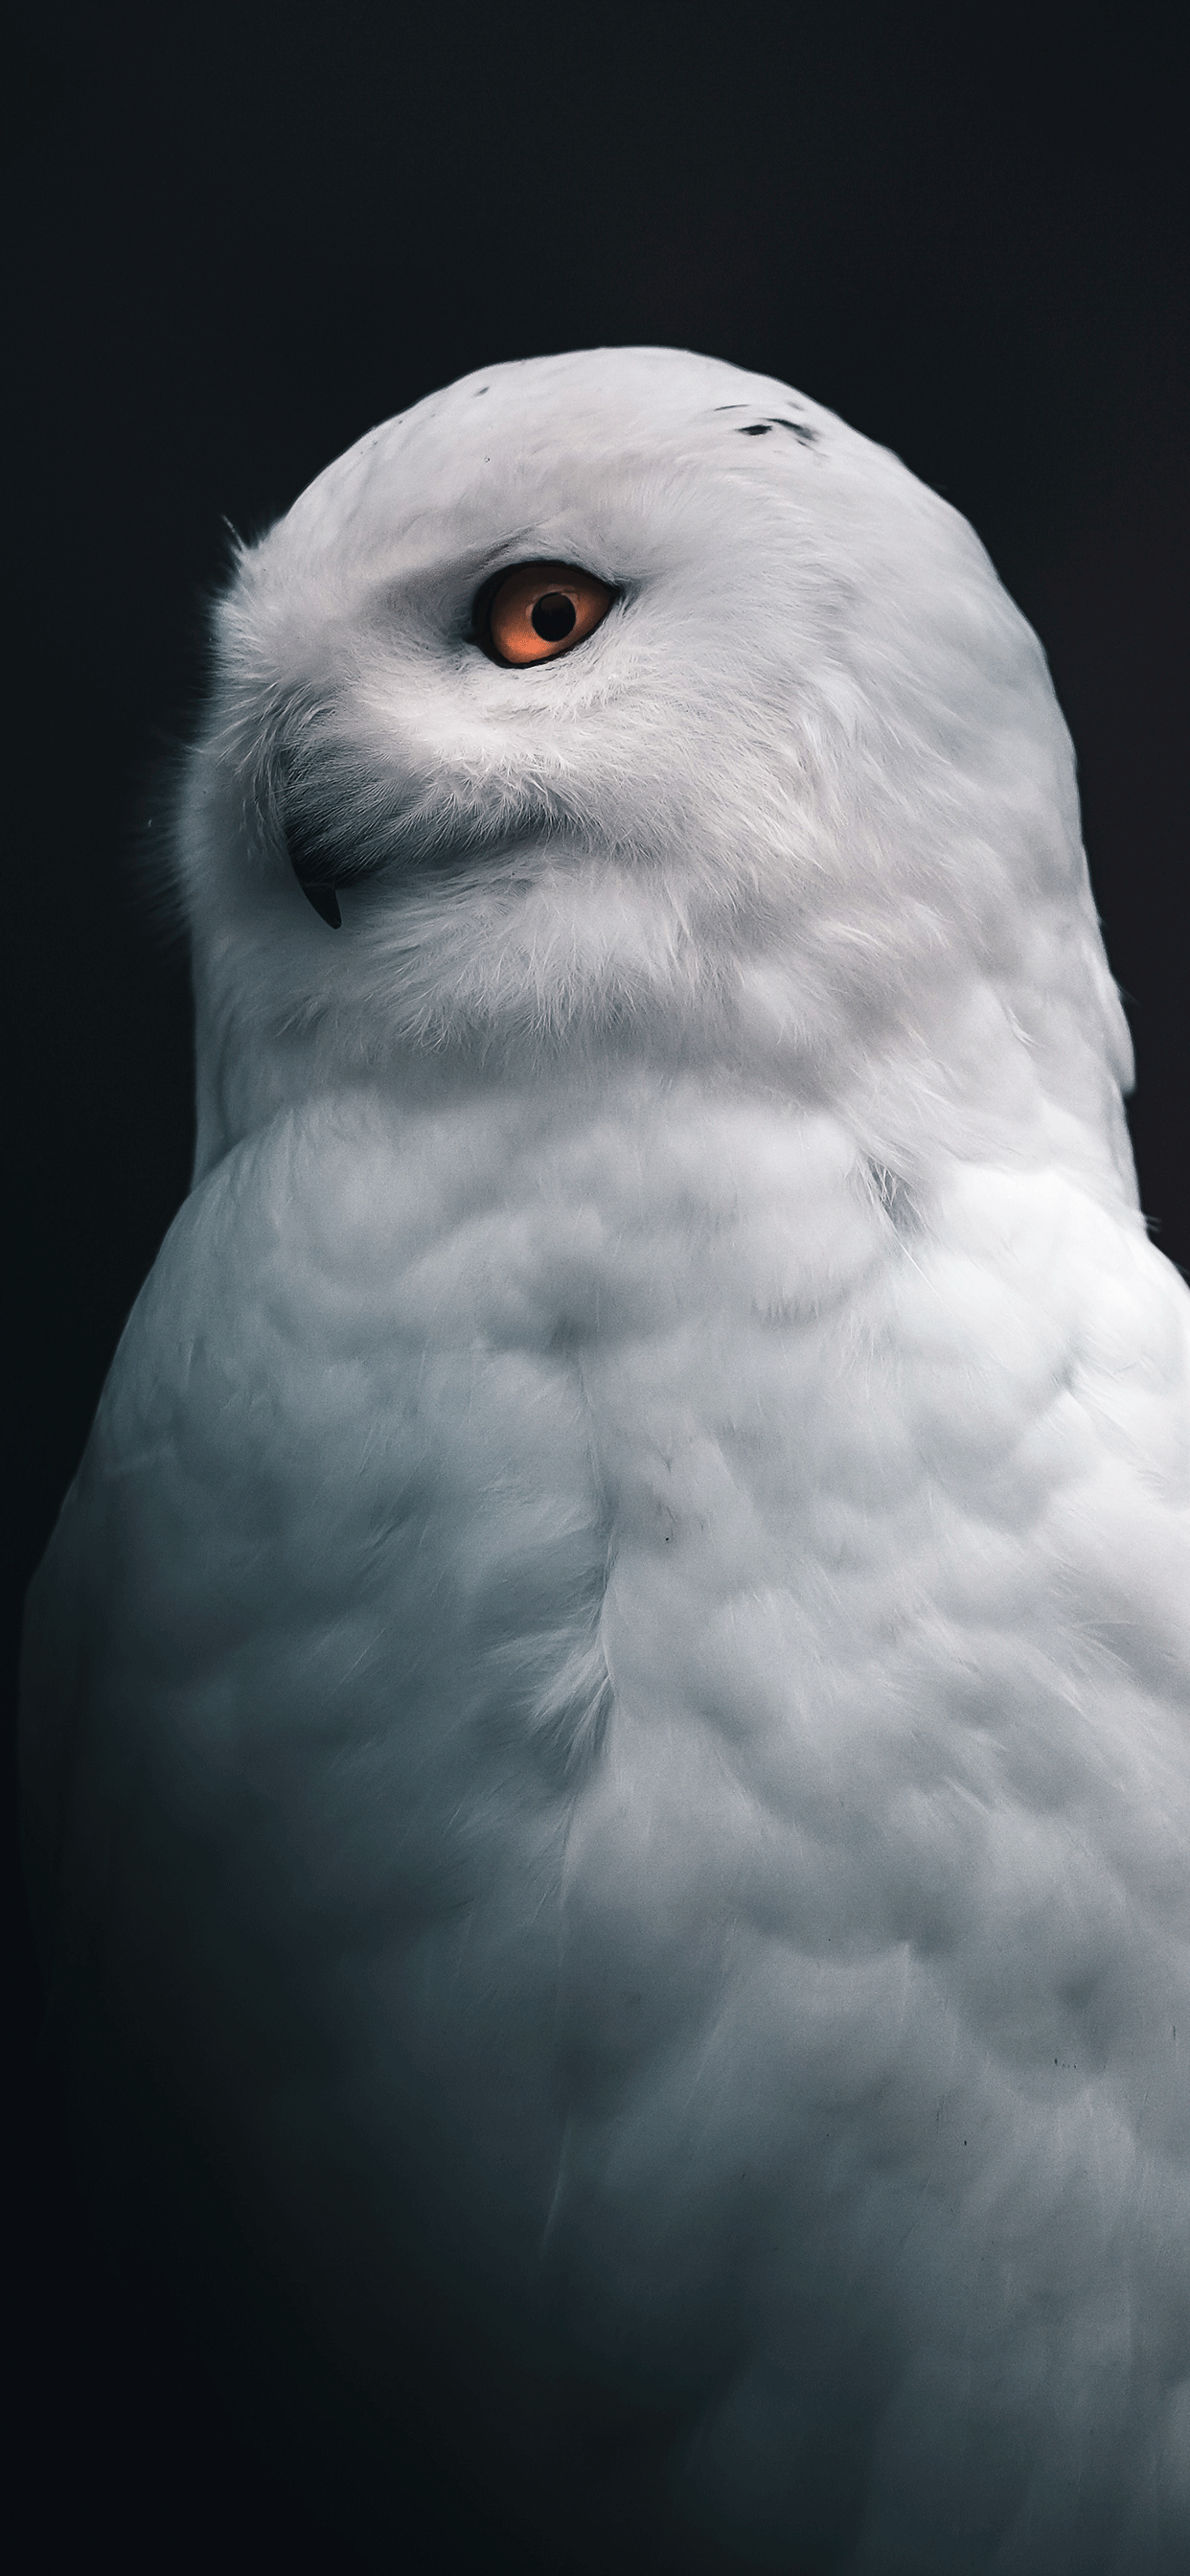 Owl Wallpaper For Iphone X 8 7 6 Free Download On